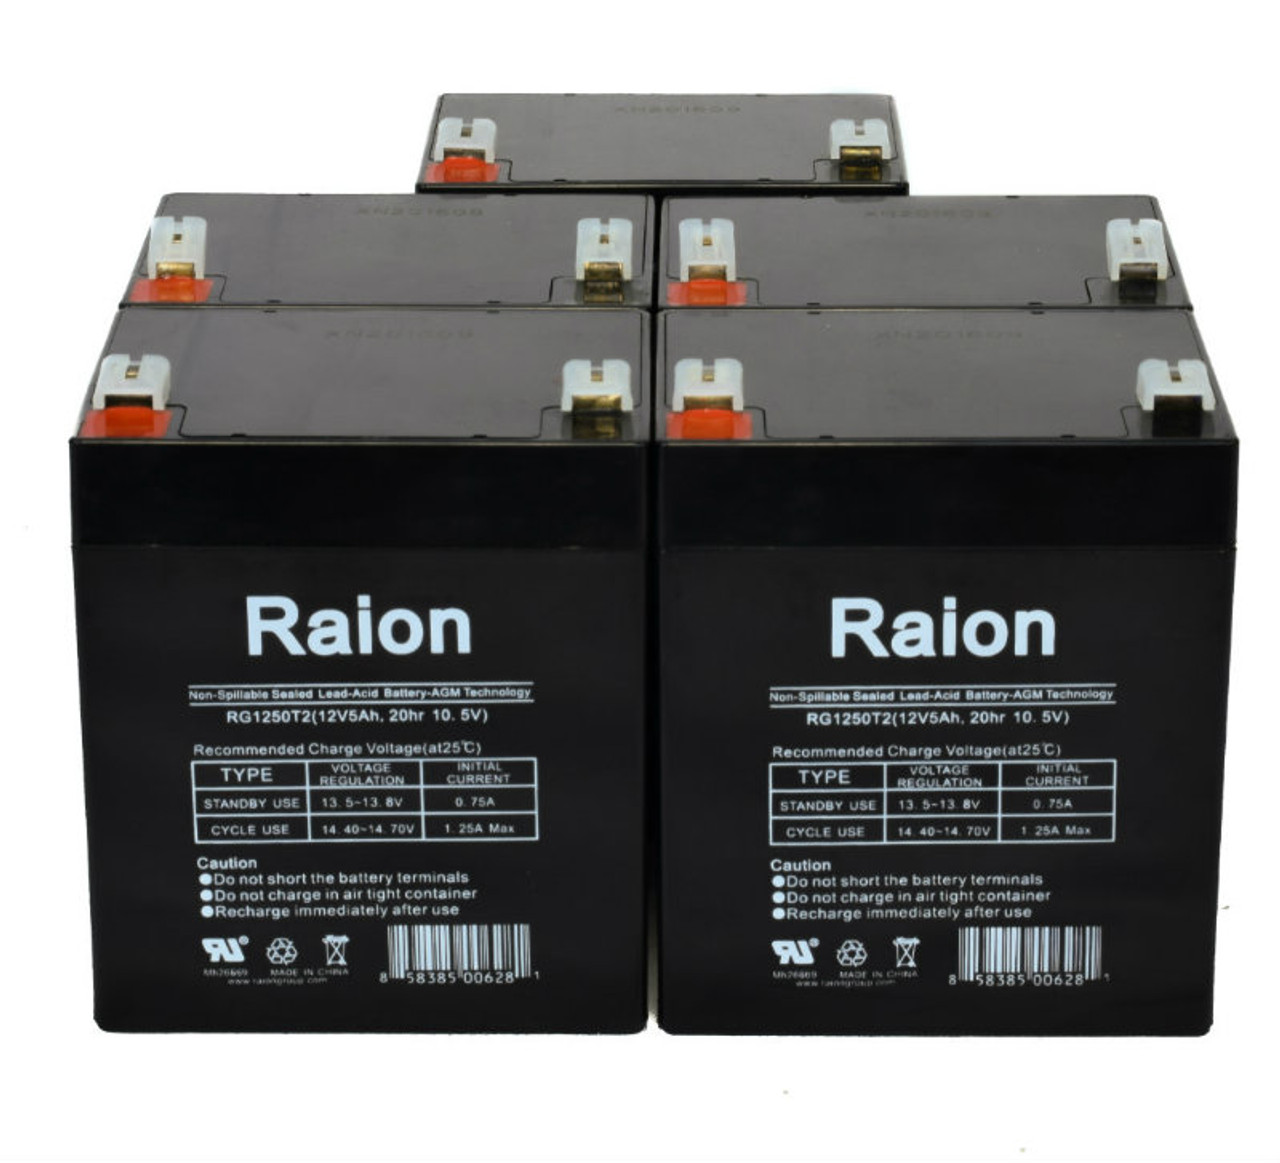 Raion Power RG1250T1 Replacement Battery for IBT Technologies BT4.5-12 - (5 Pack)